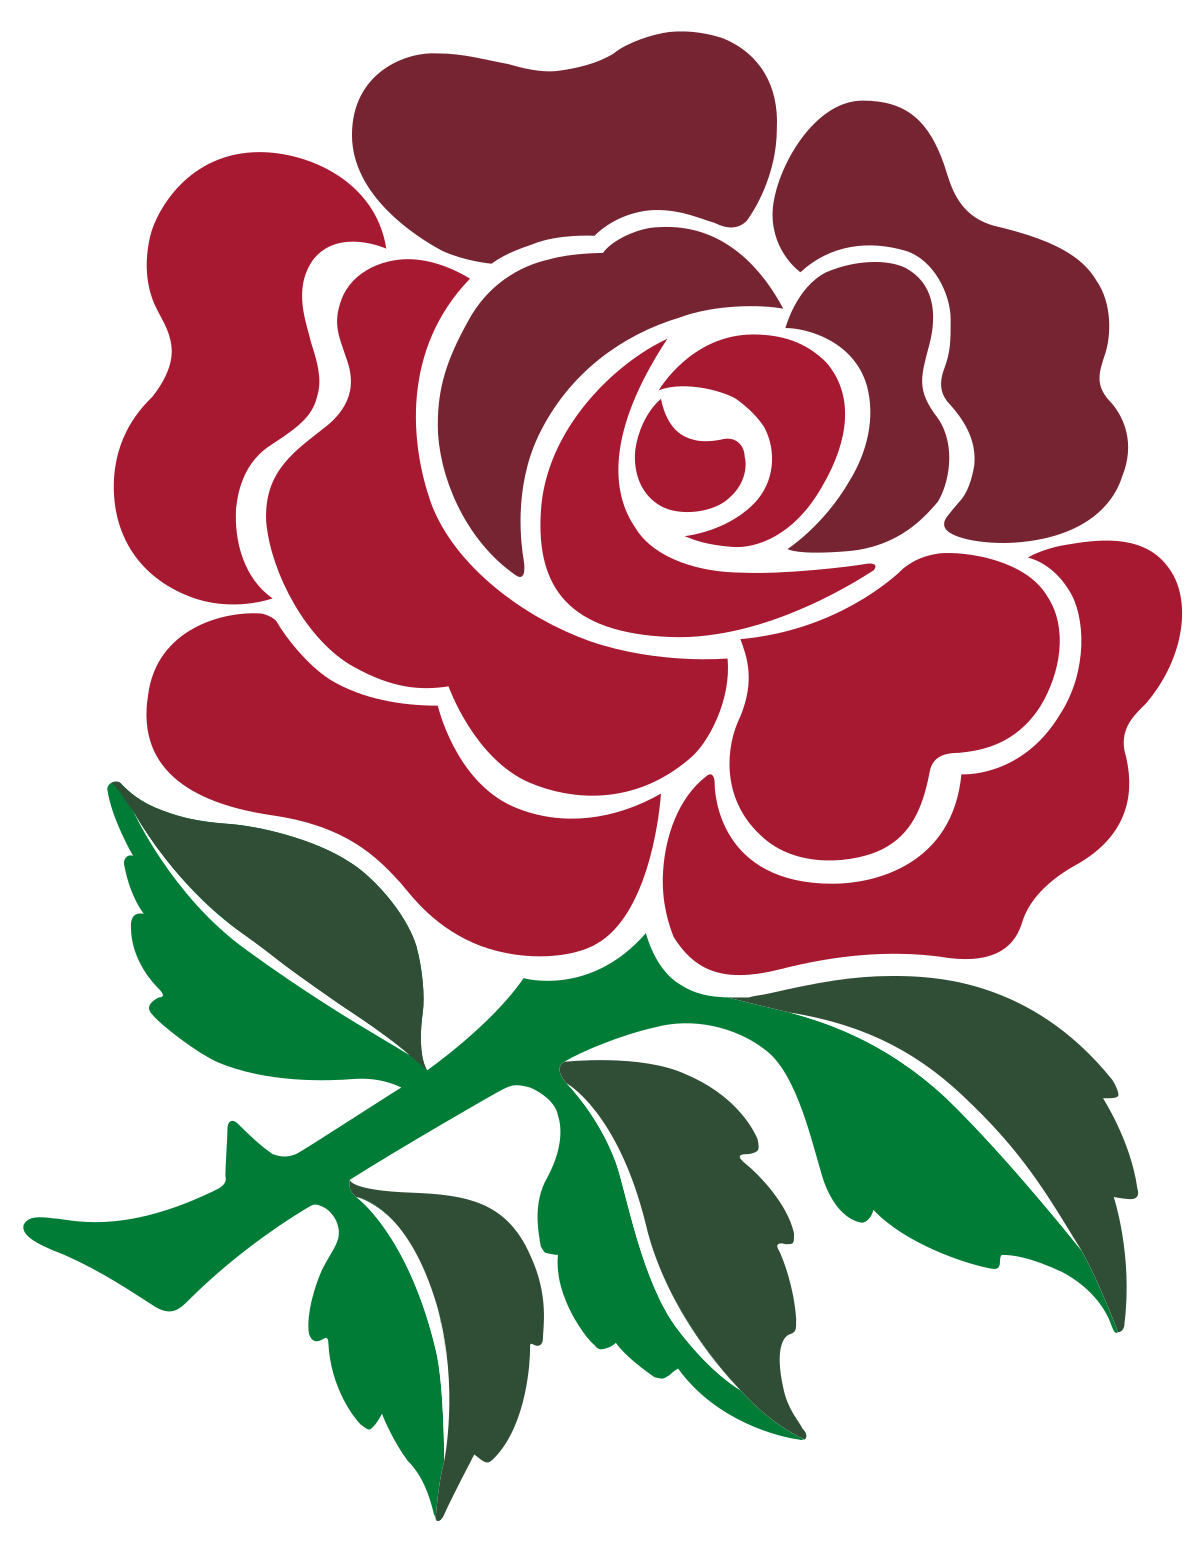 England national rugby union team.